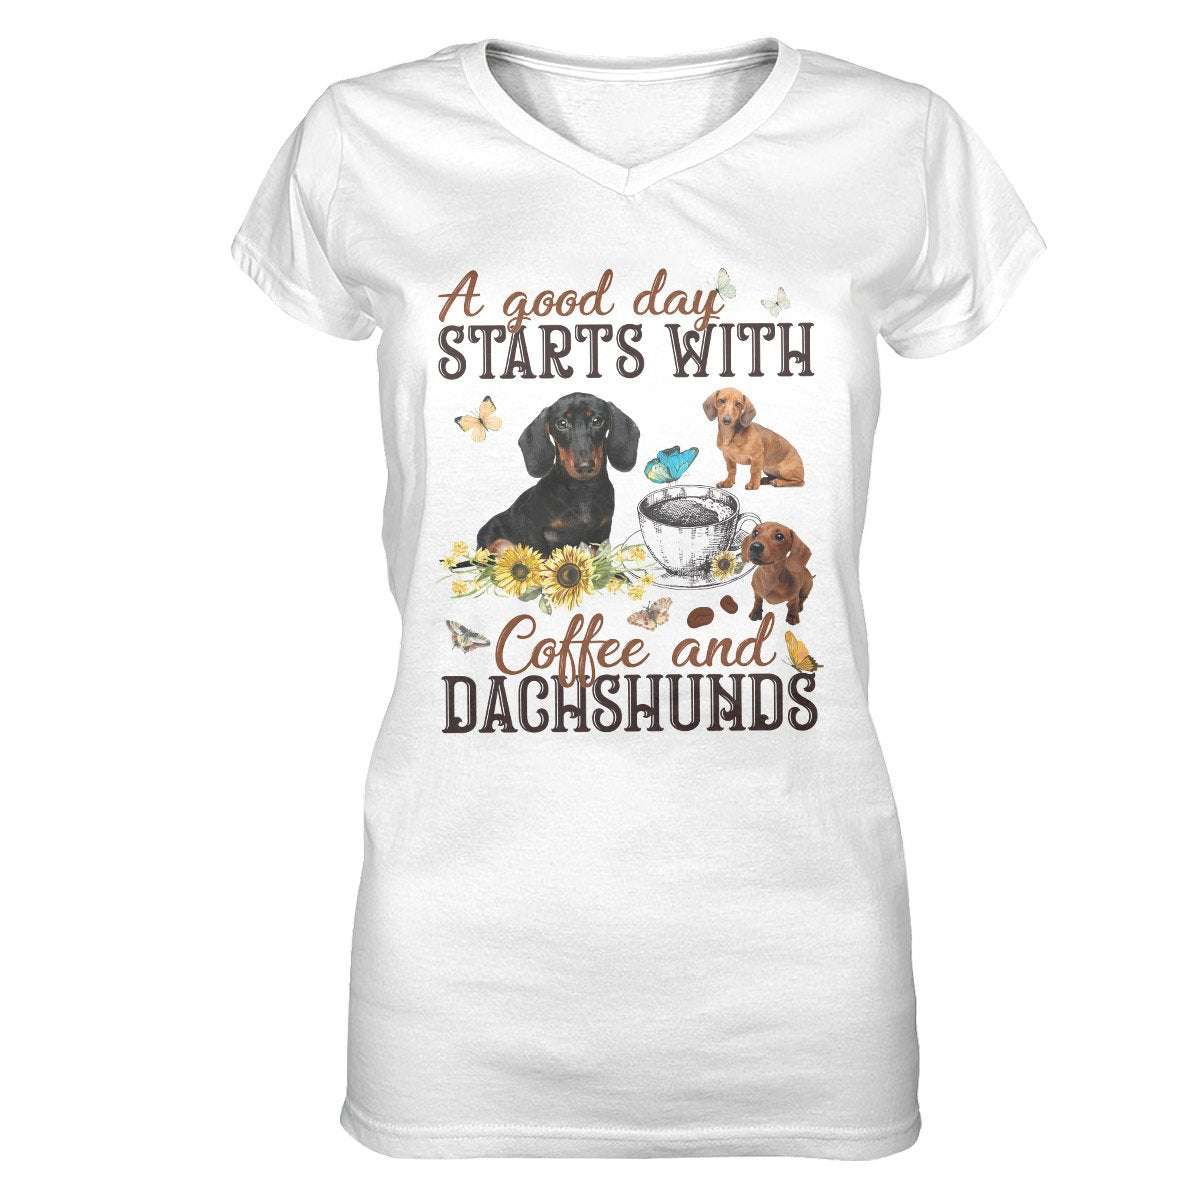 Dachshunds A Good Day Start With Coffee EZ07 2309 Women V-neck T-shirt